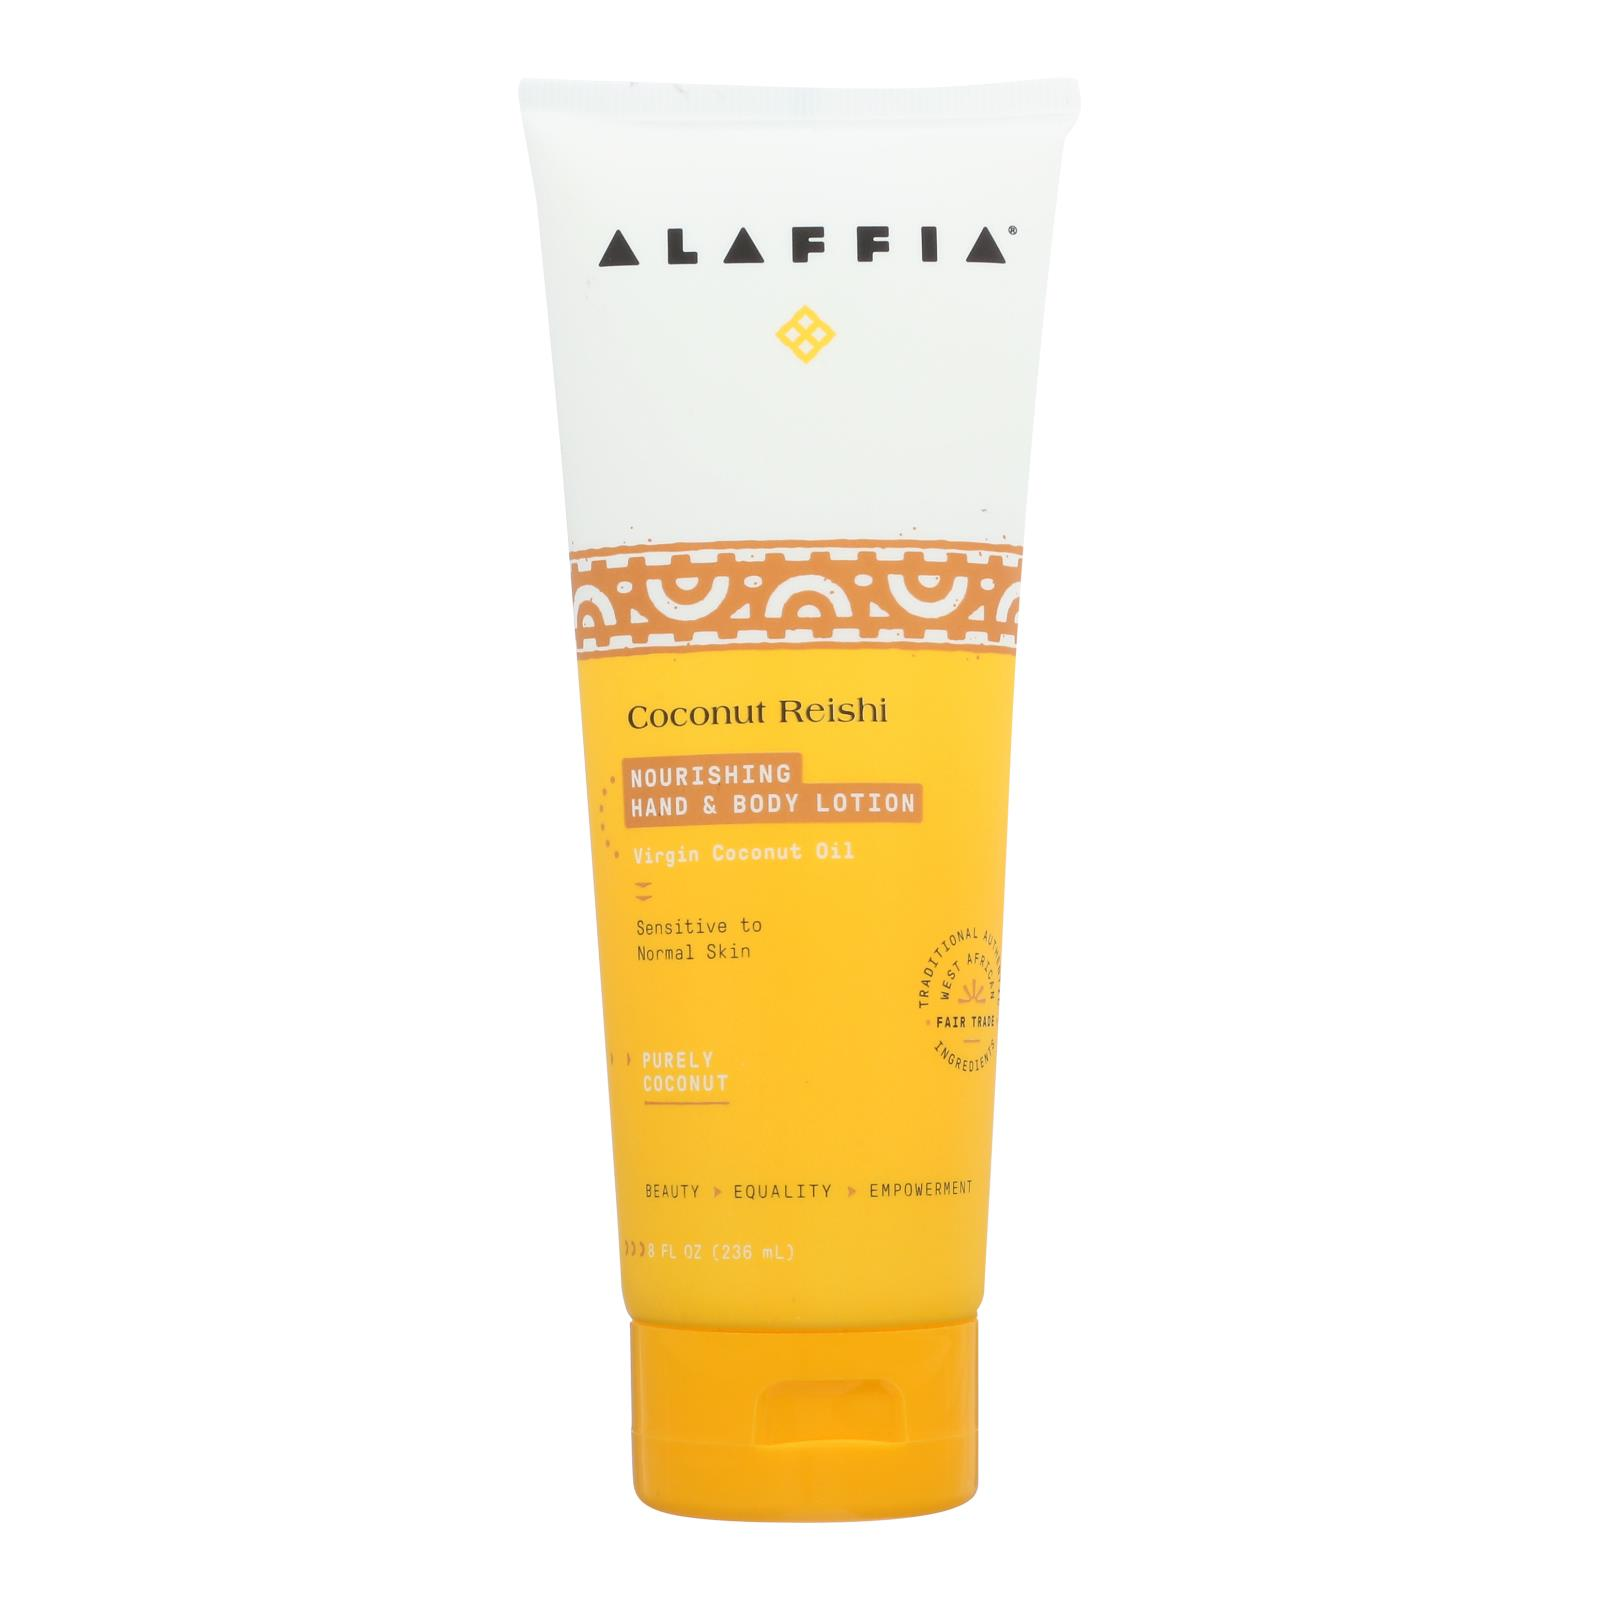 Alaffia - Hand and Body Lotion - Coconut Reishi - 8 fl oz.